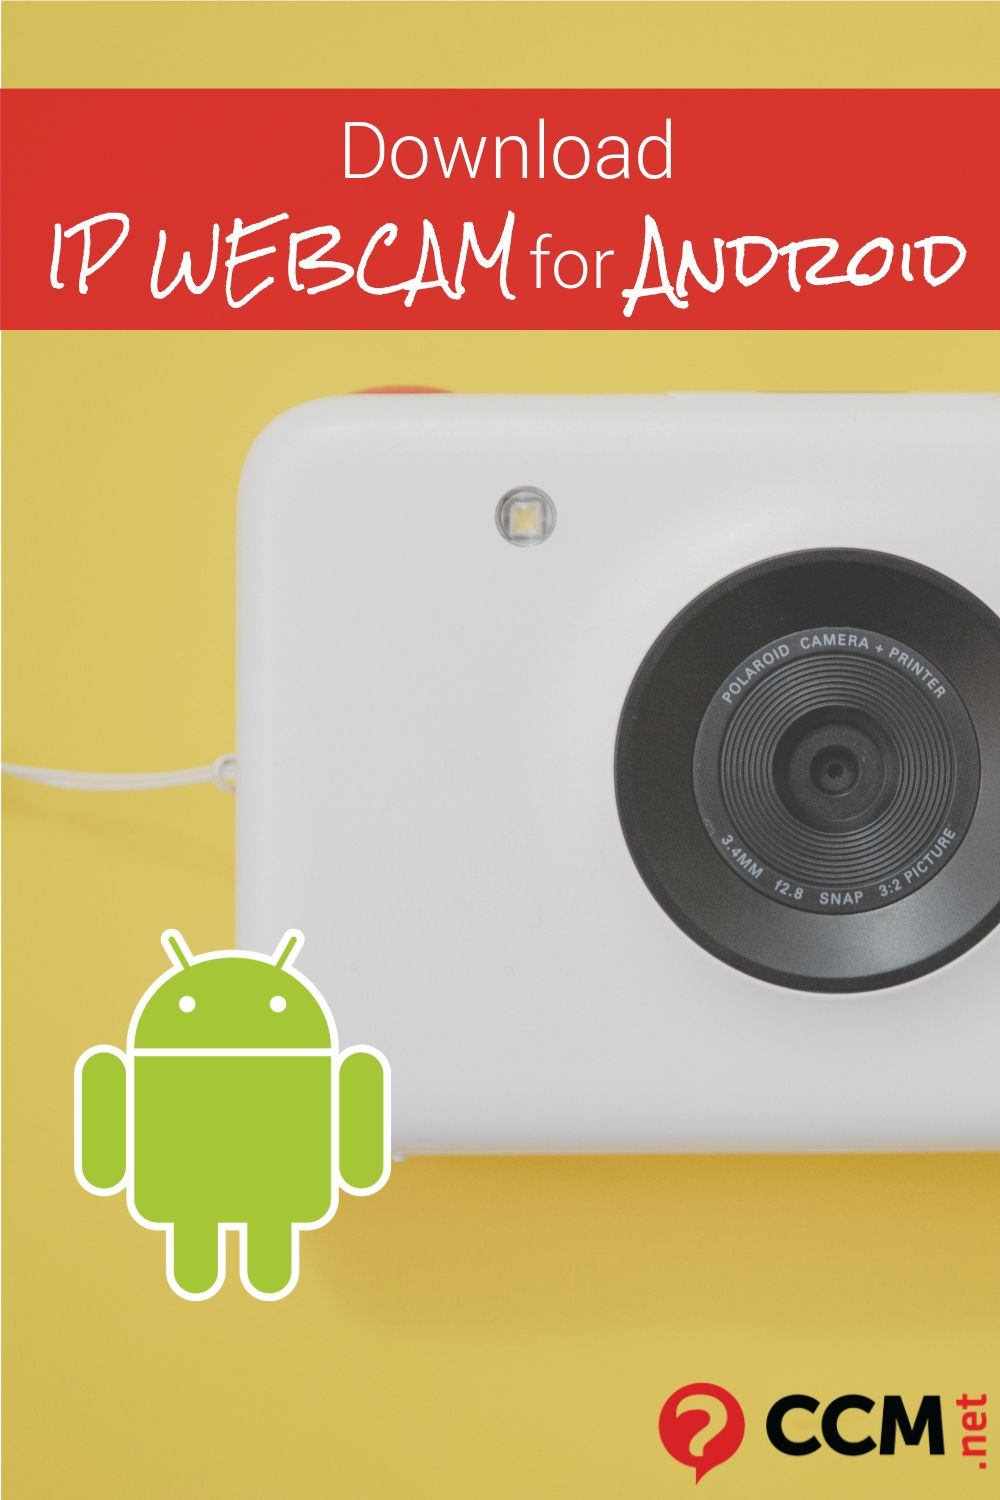 Download IP Webcam for Android!